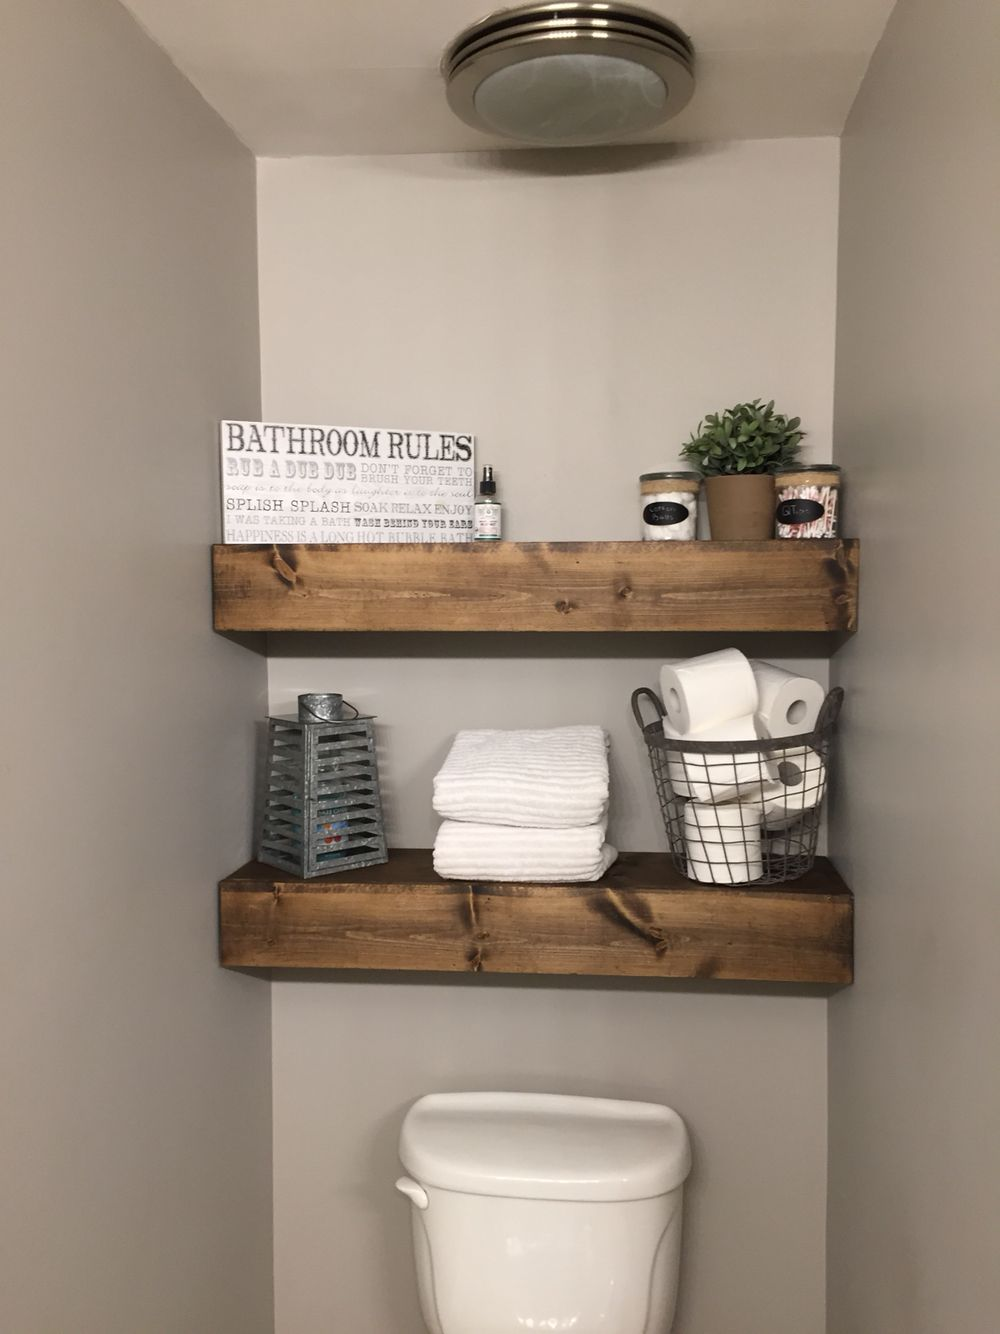 Built In Bathroom Shelves We Built These Chunky Wood Shelves In Our Bathroom I Love Them